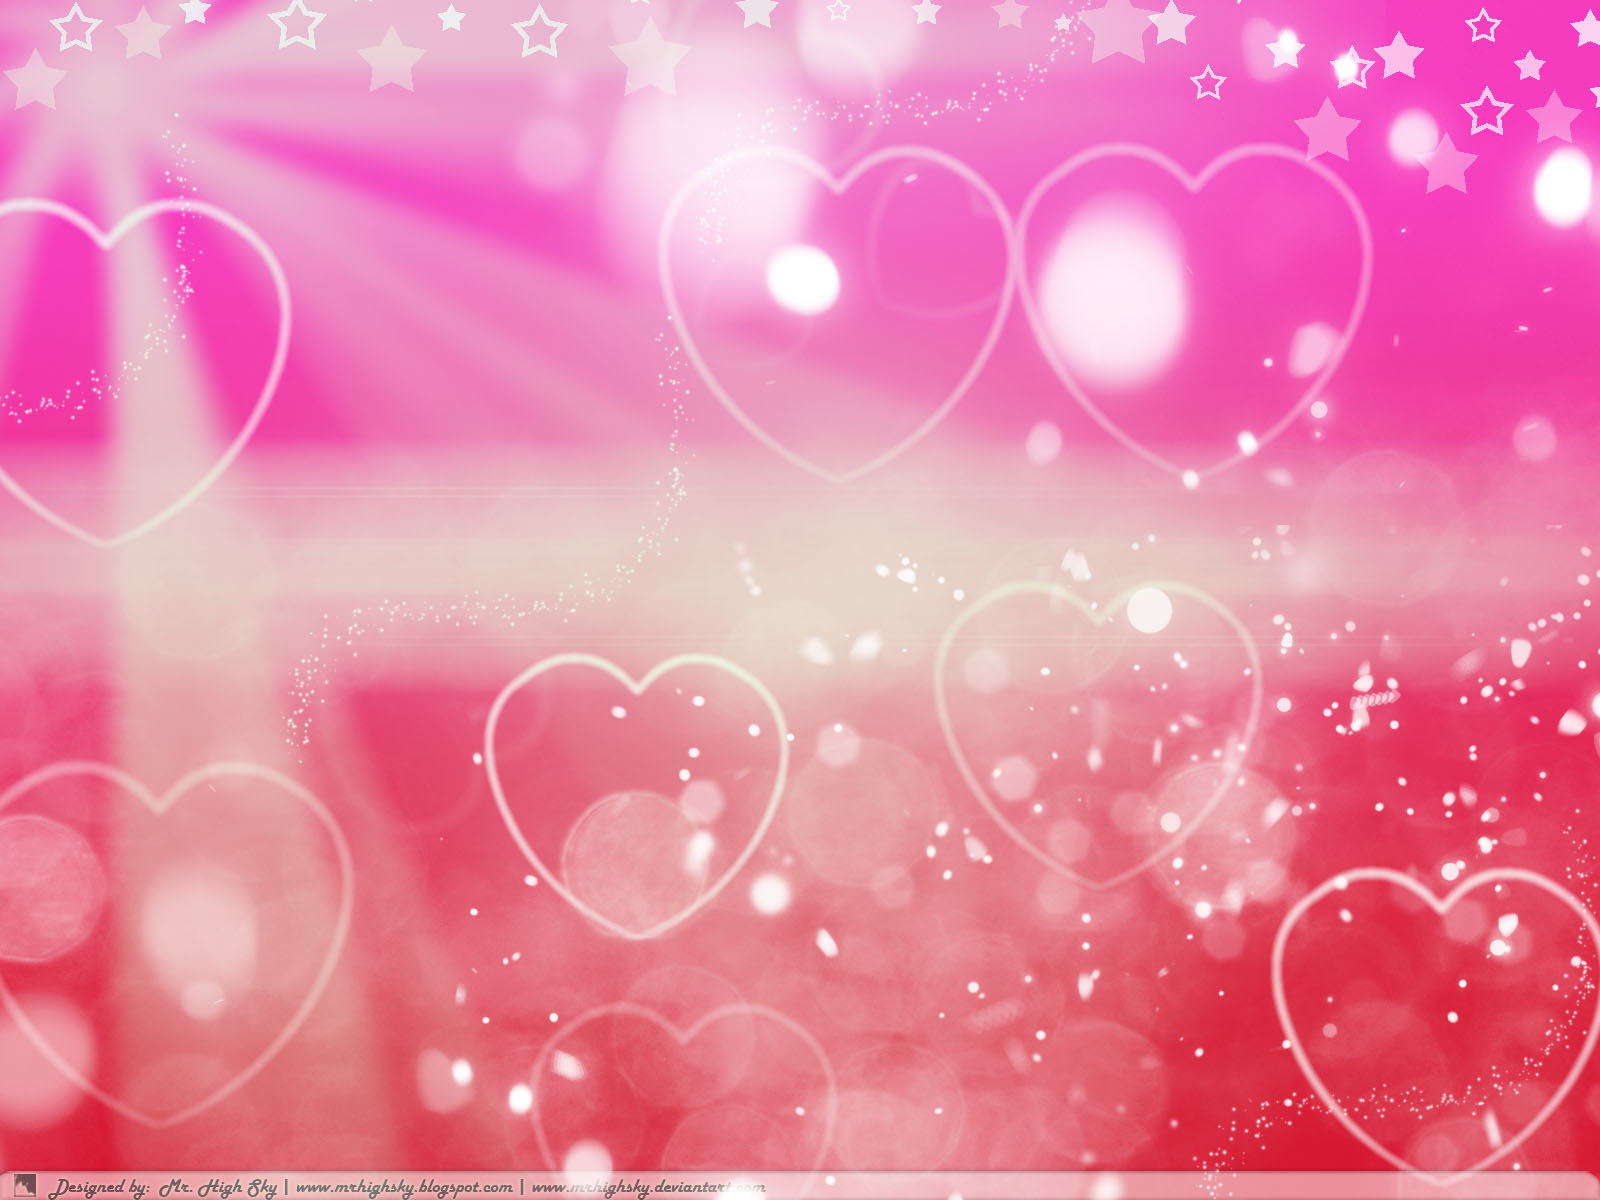 Lovely Love Desktop Wallpaper : A New Love Textured Wallpaper Lovely crafty Home Auto Design Tech